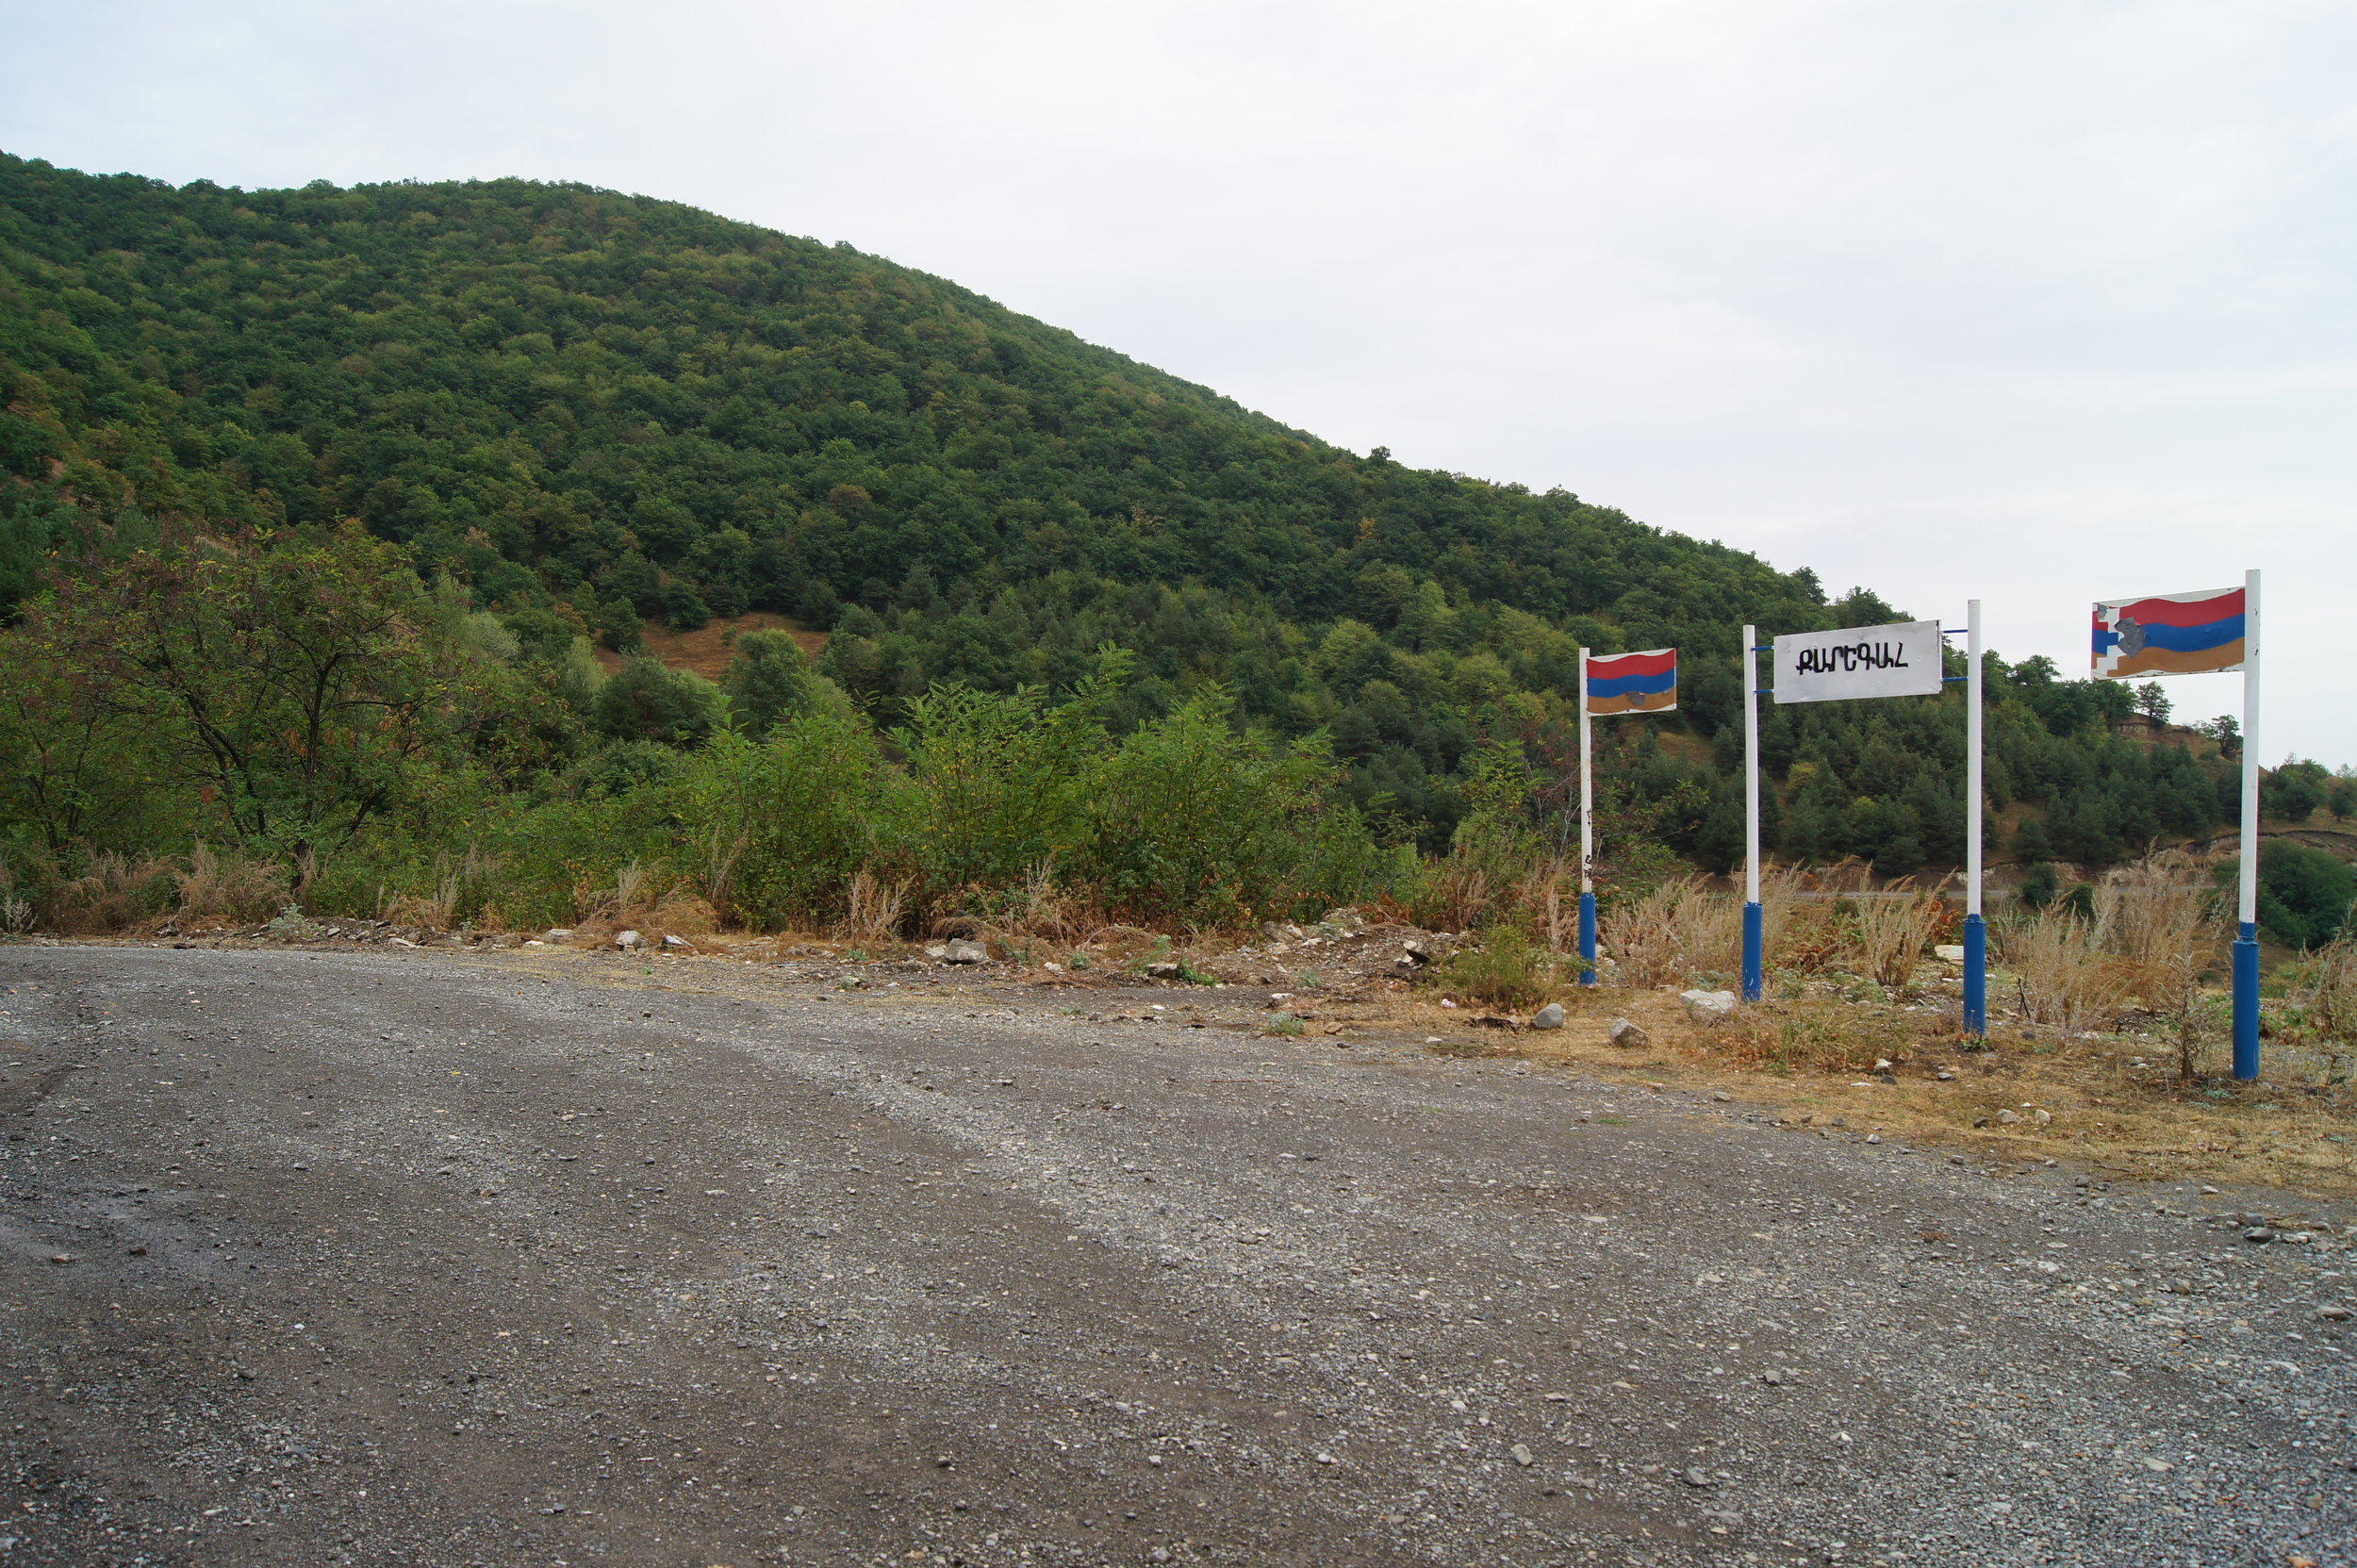 - Karegah Forest which is a minefield